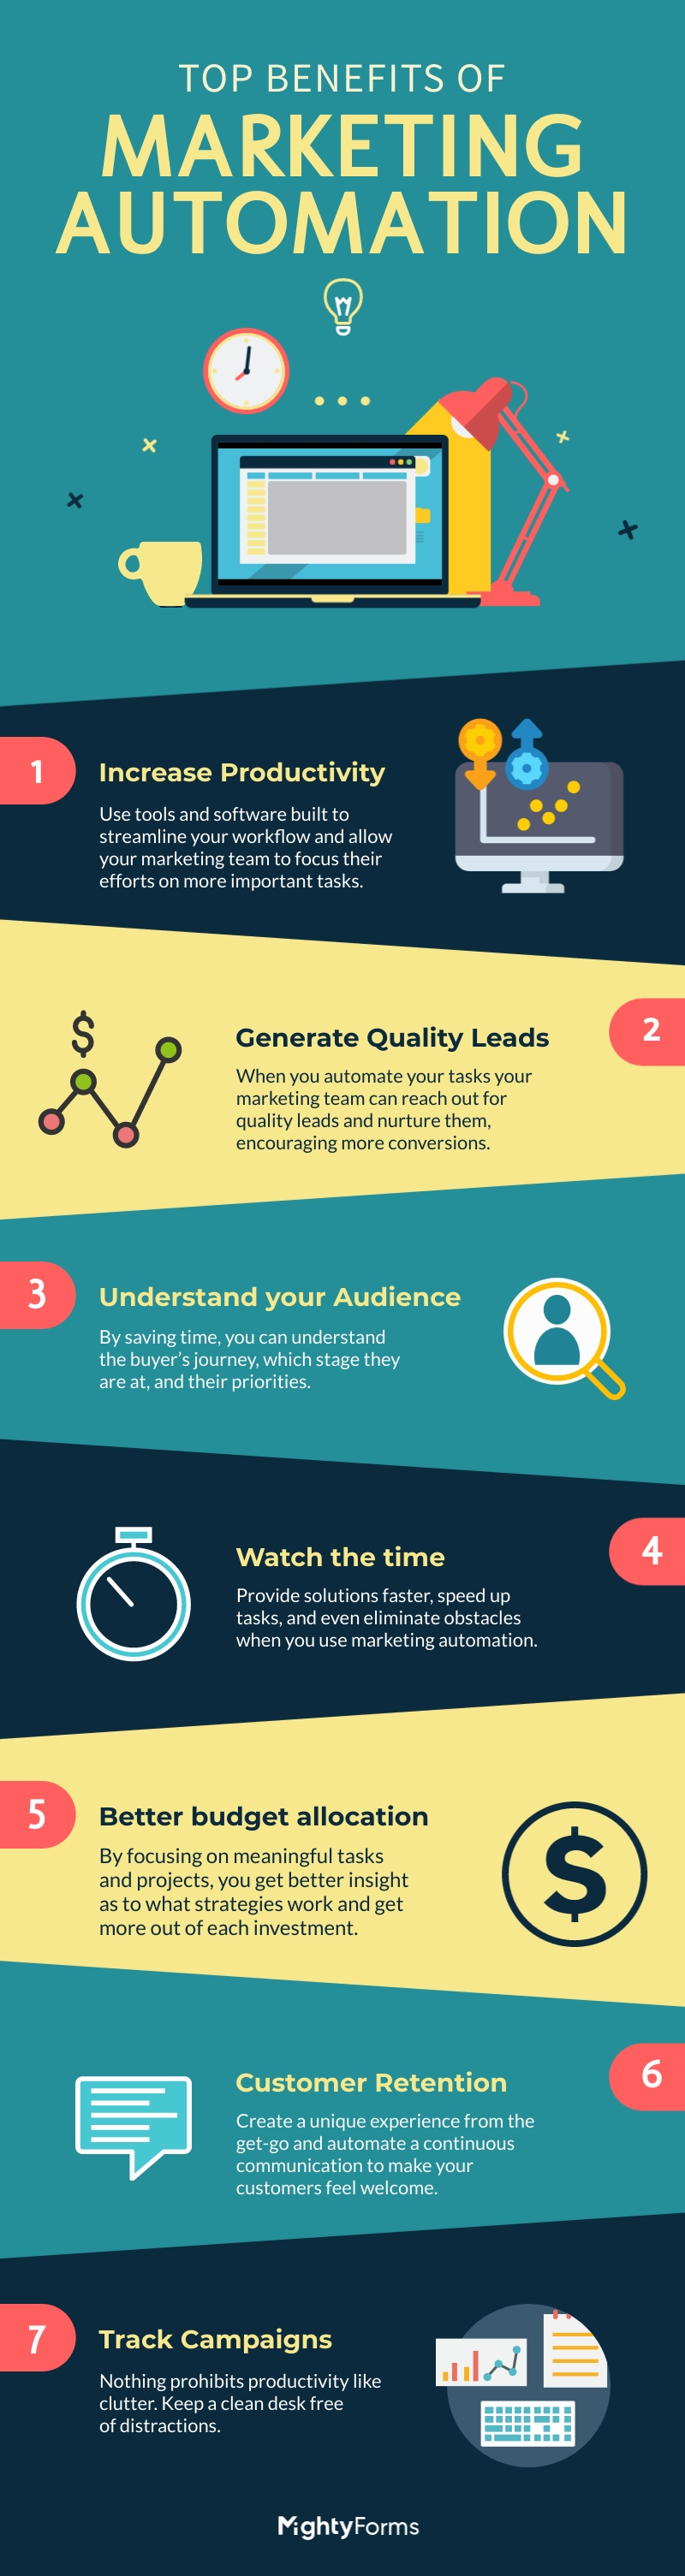 Benefits of Marketing Automation infographic MightyForms